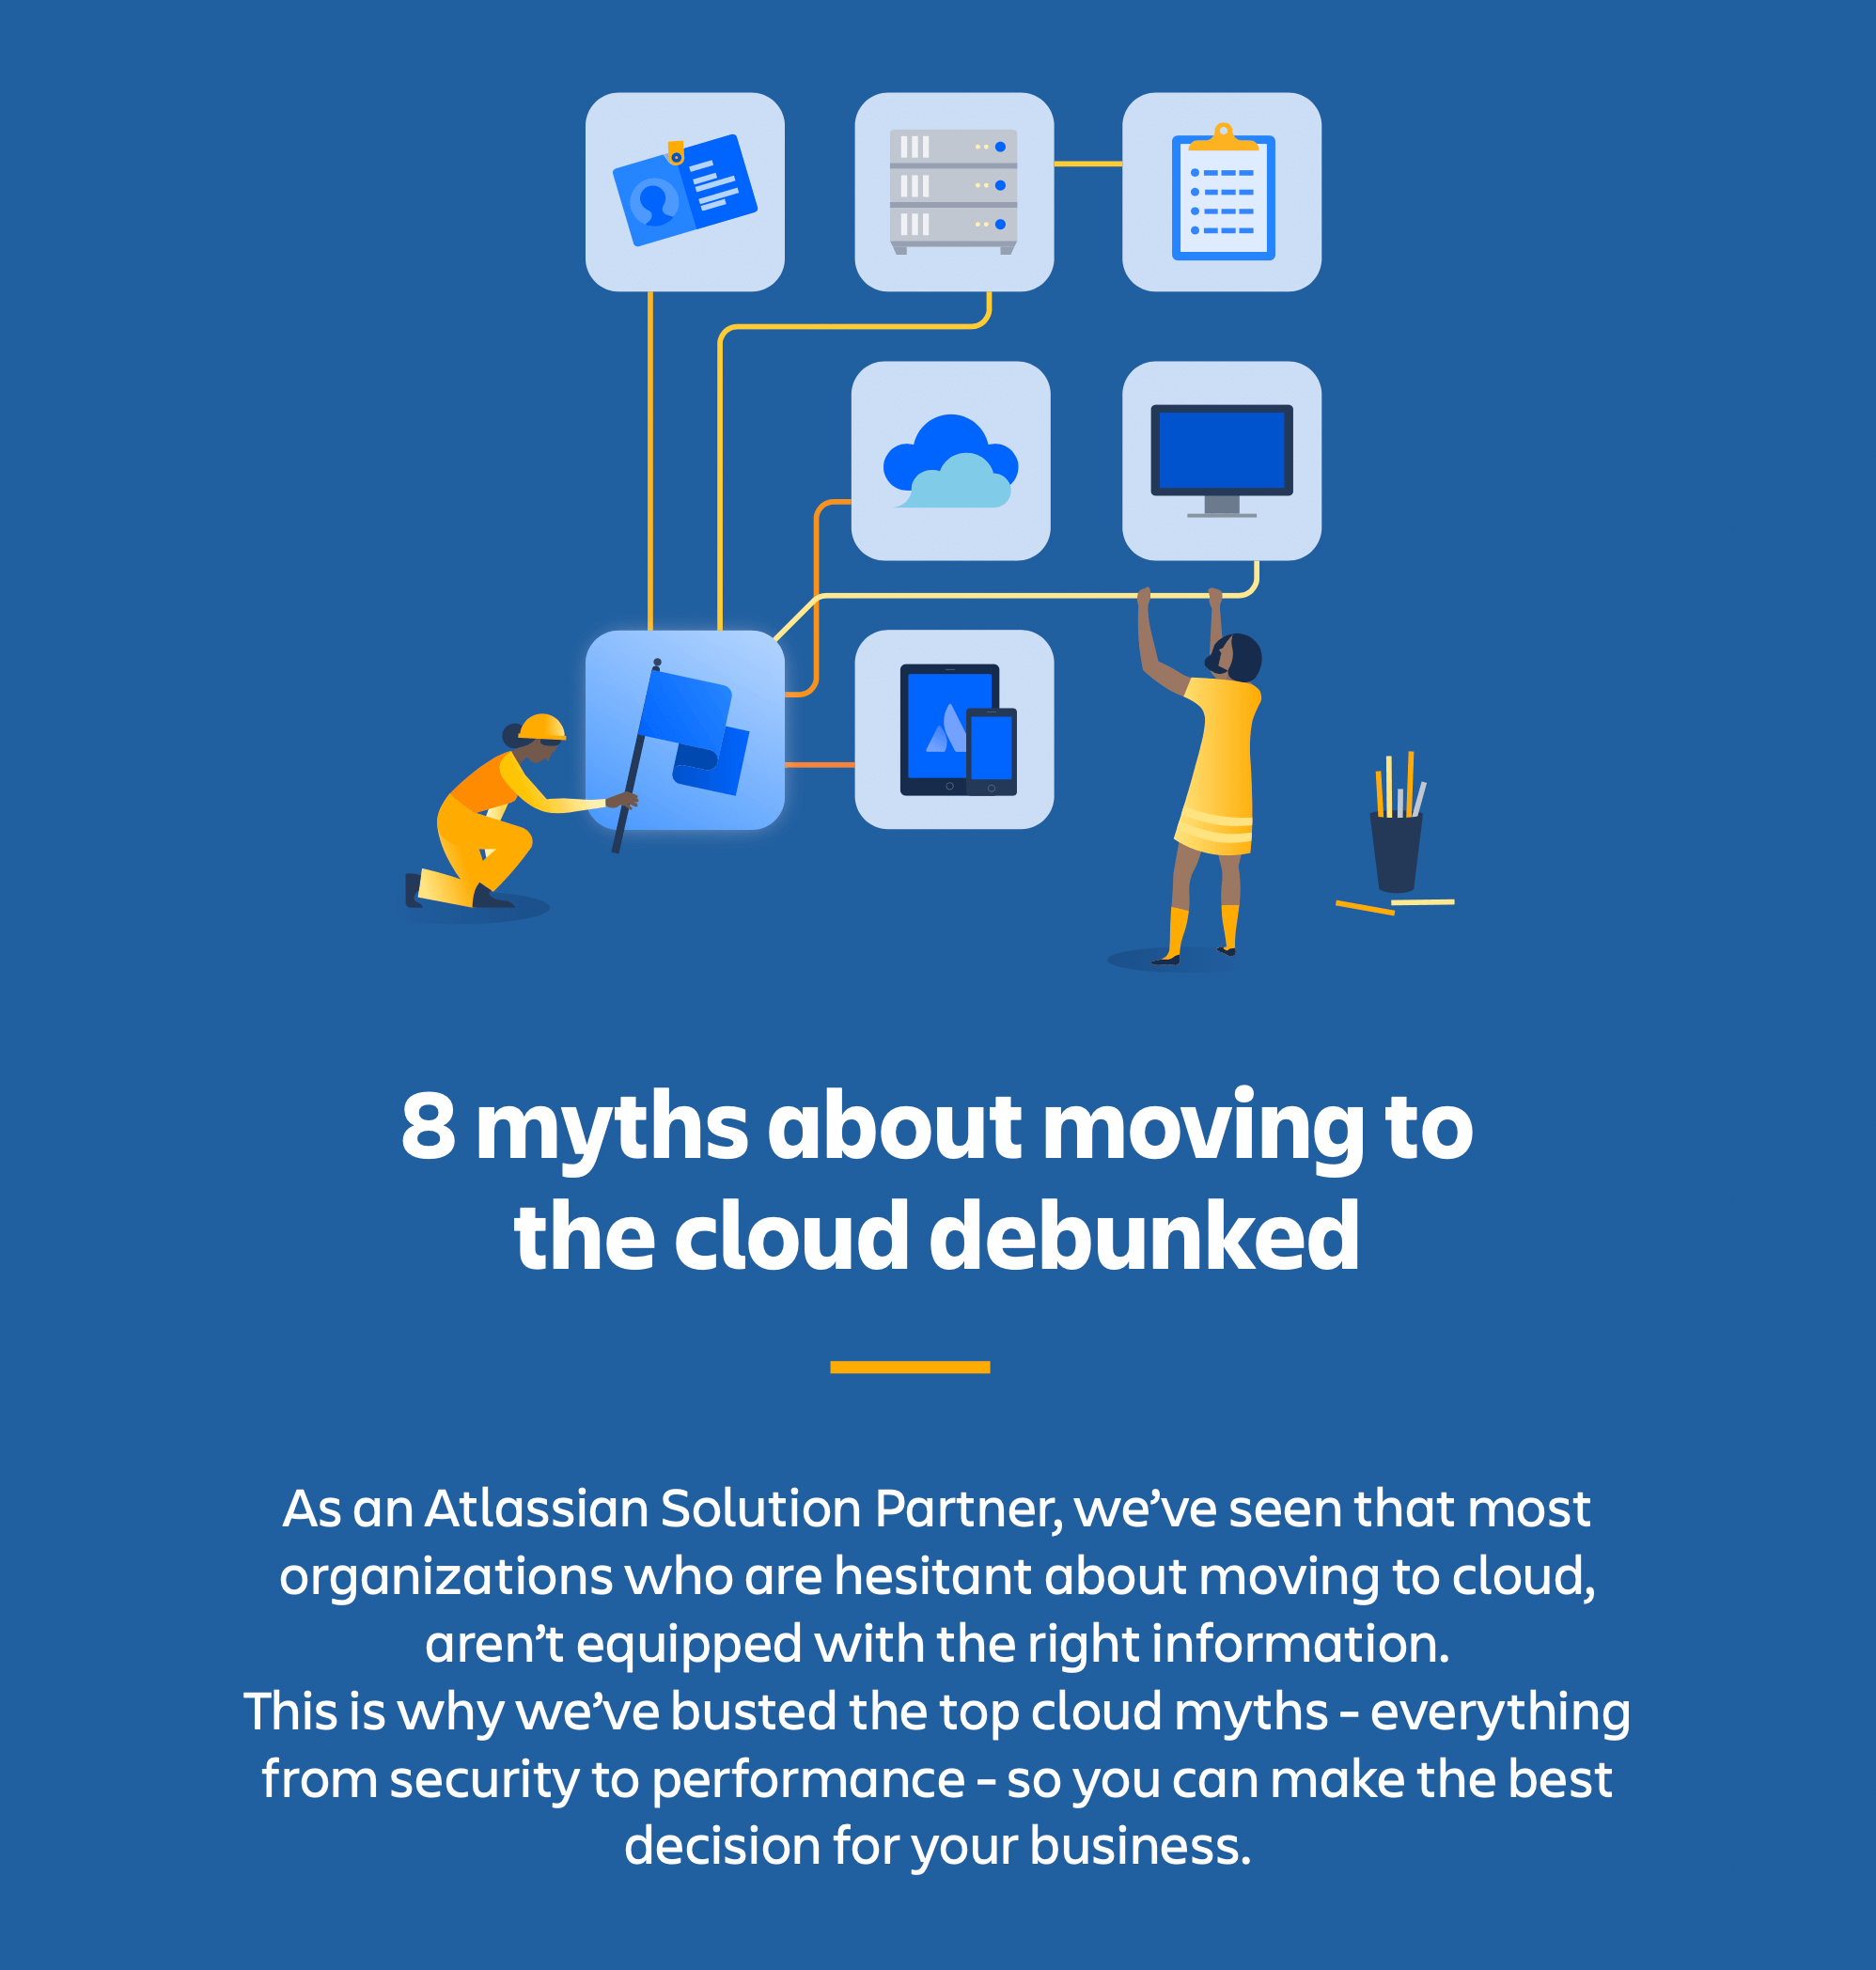 8 myth about moving to the cloud debunked